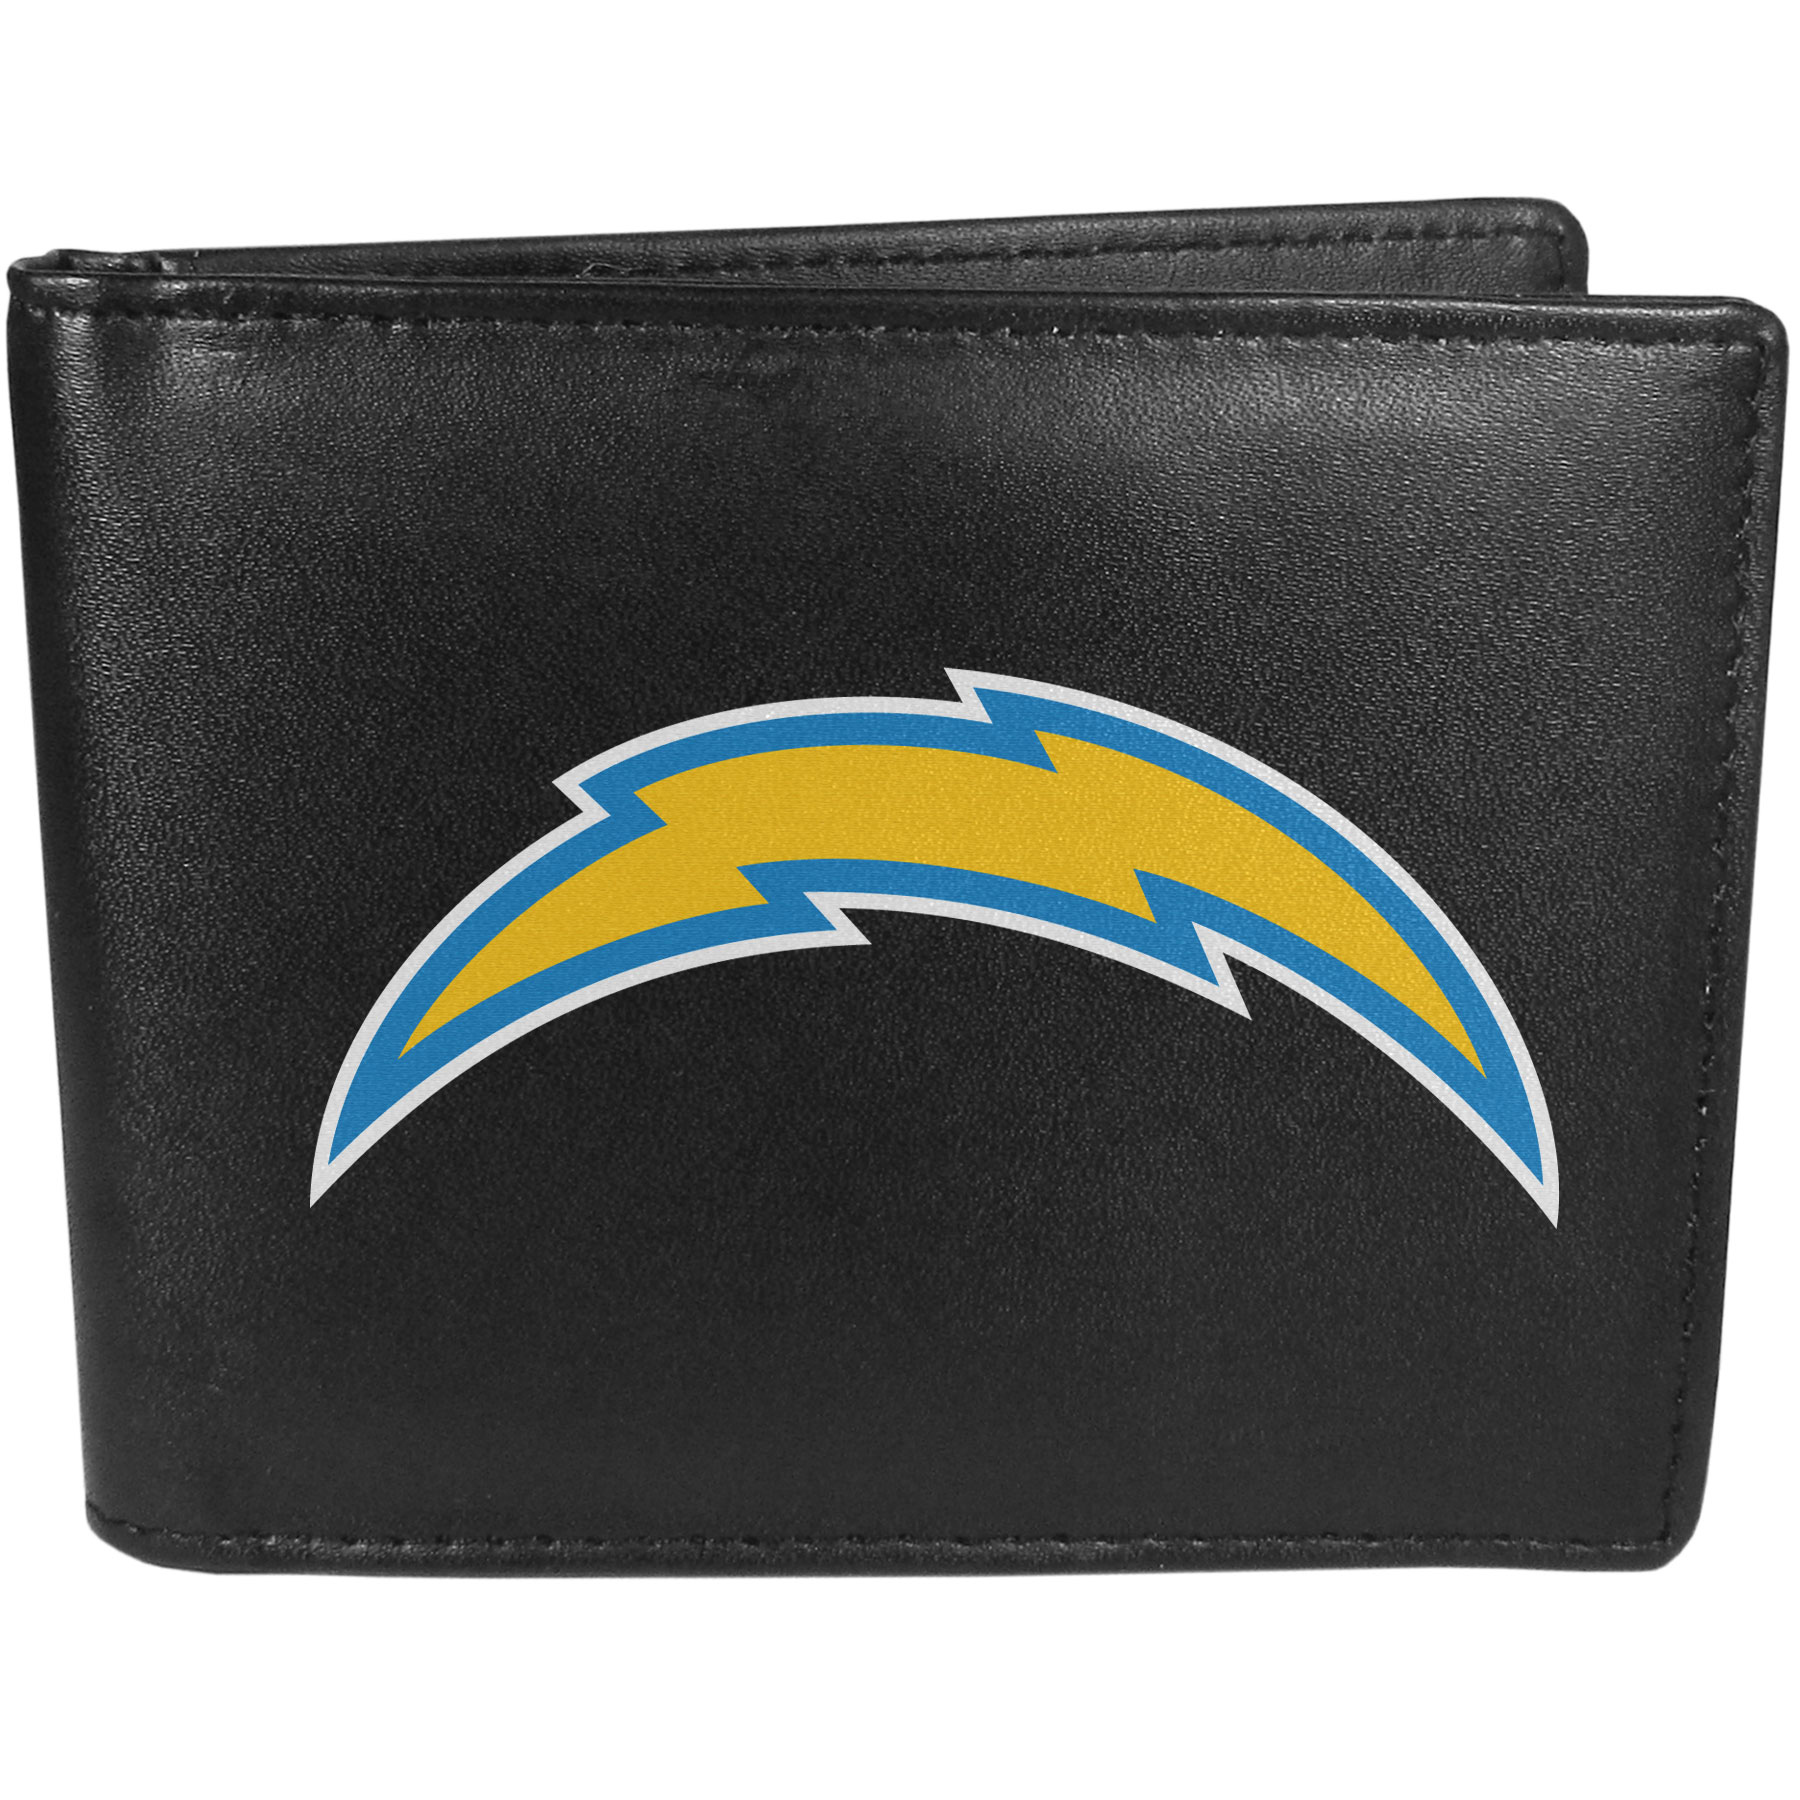 Los Angeles Chargers Leather Bi-fold Wallet, Large Logo - Our classic fine leather bi-fold wallet is meticulously crafted with genuine leather that will age beautifully so you will have a quality wallet for years to come. The wallet opens to a large, billfold pocket and numerous credit card slots and has a convenient windowed ID slot. The front of the wallet features an extra large Los Angeles Chargers printed logo.